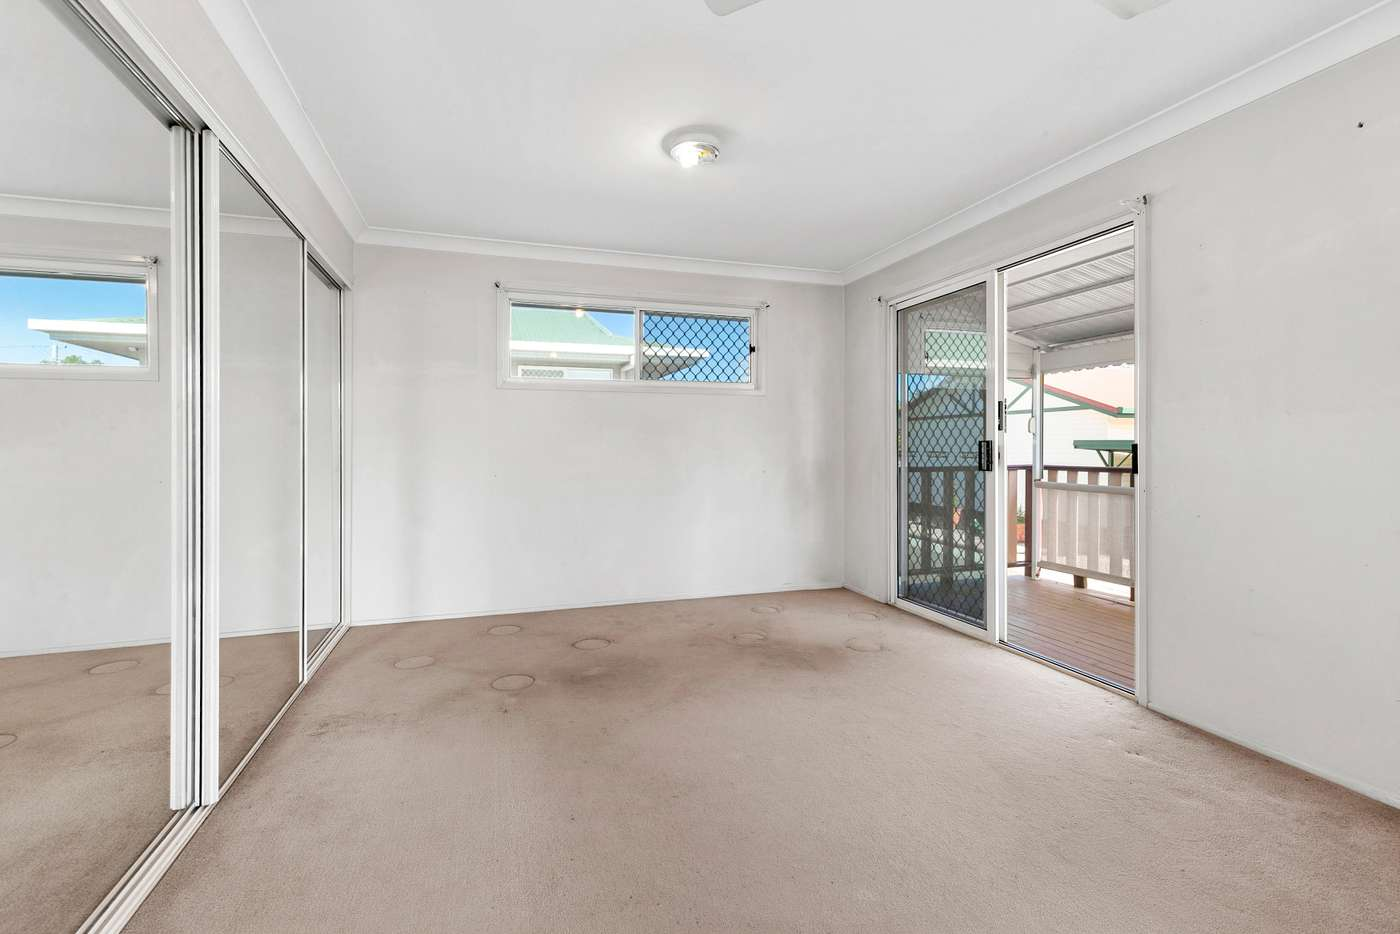 Seventh view of Homely villa listing, 3/2 Ford Court, Carindale QLD 4152